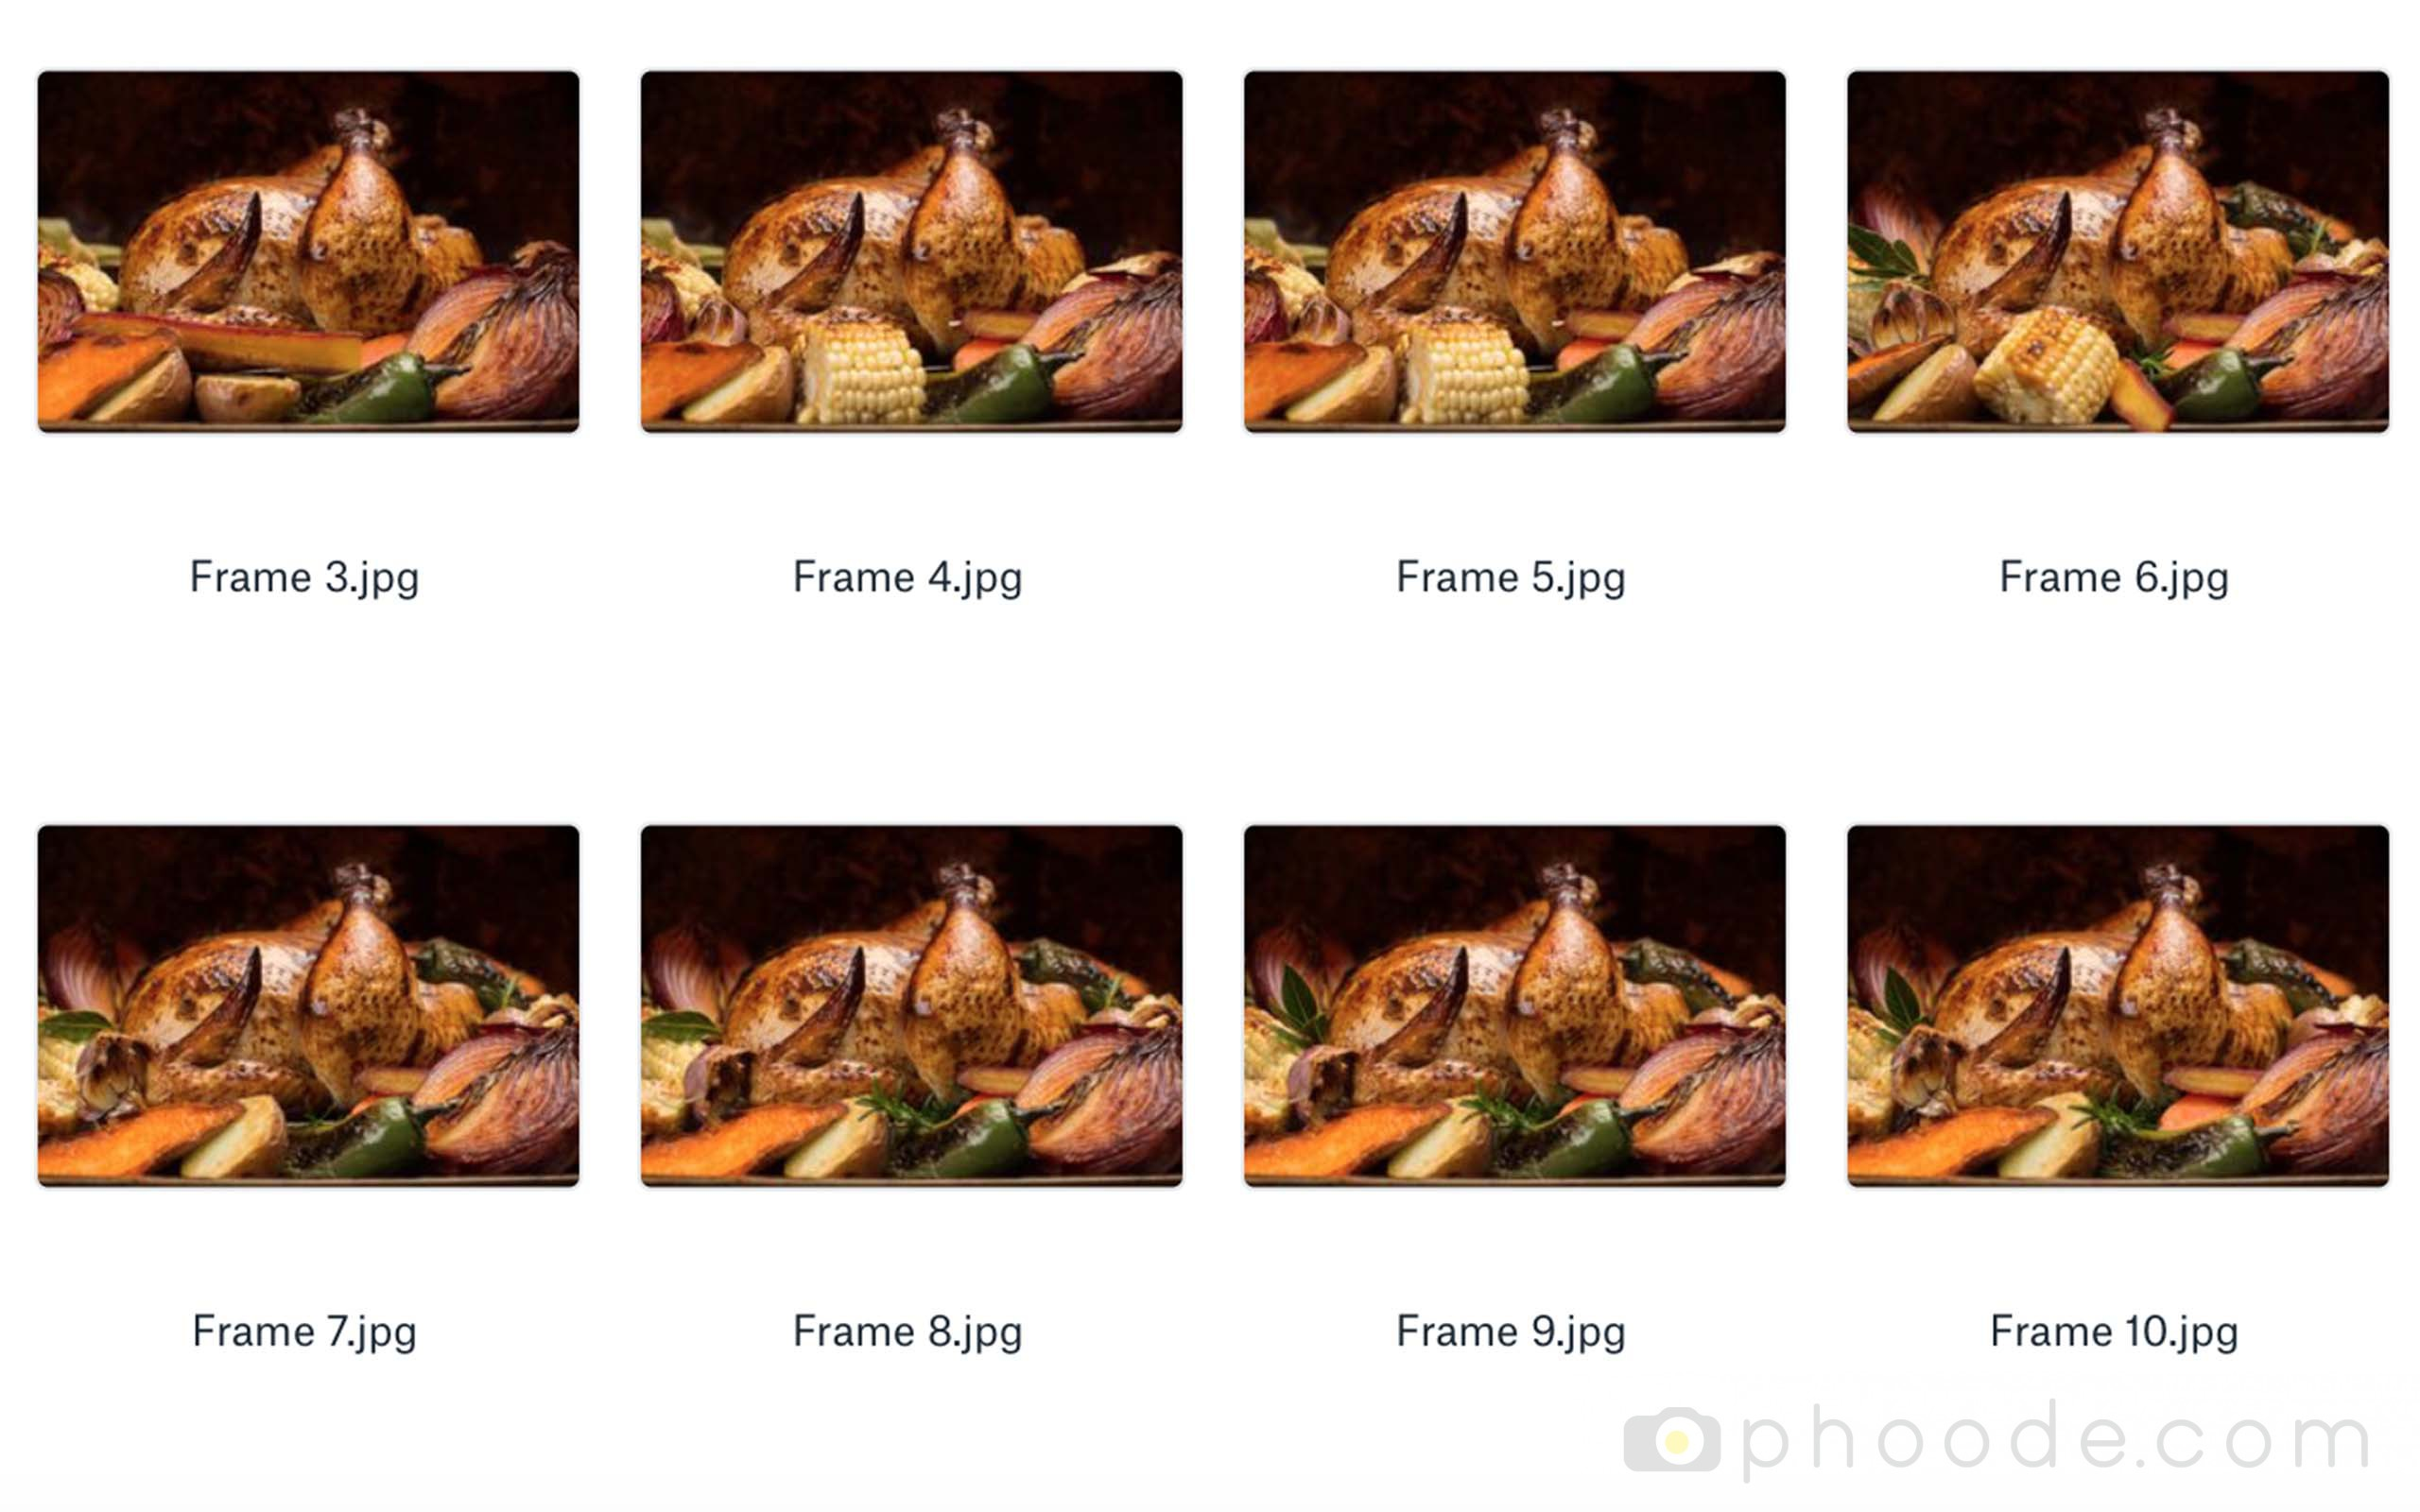 food photographers stylists network platform; food stylists photographer blog website connection; creative inspiration food styling photography; learn food styling photography; phoode; food photographer los angeles; food creative director los angeles; job of commercial professional food photographer